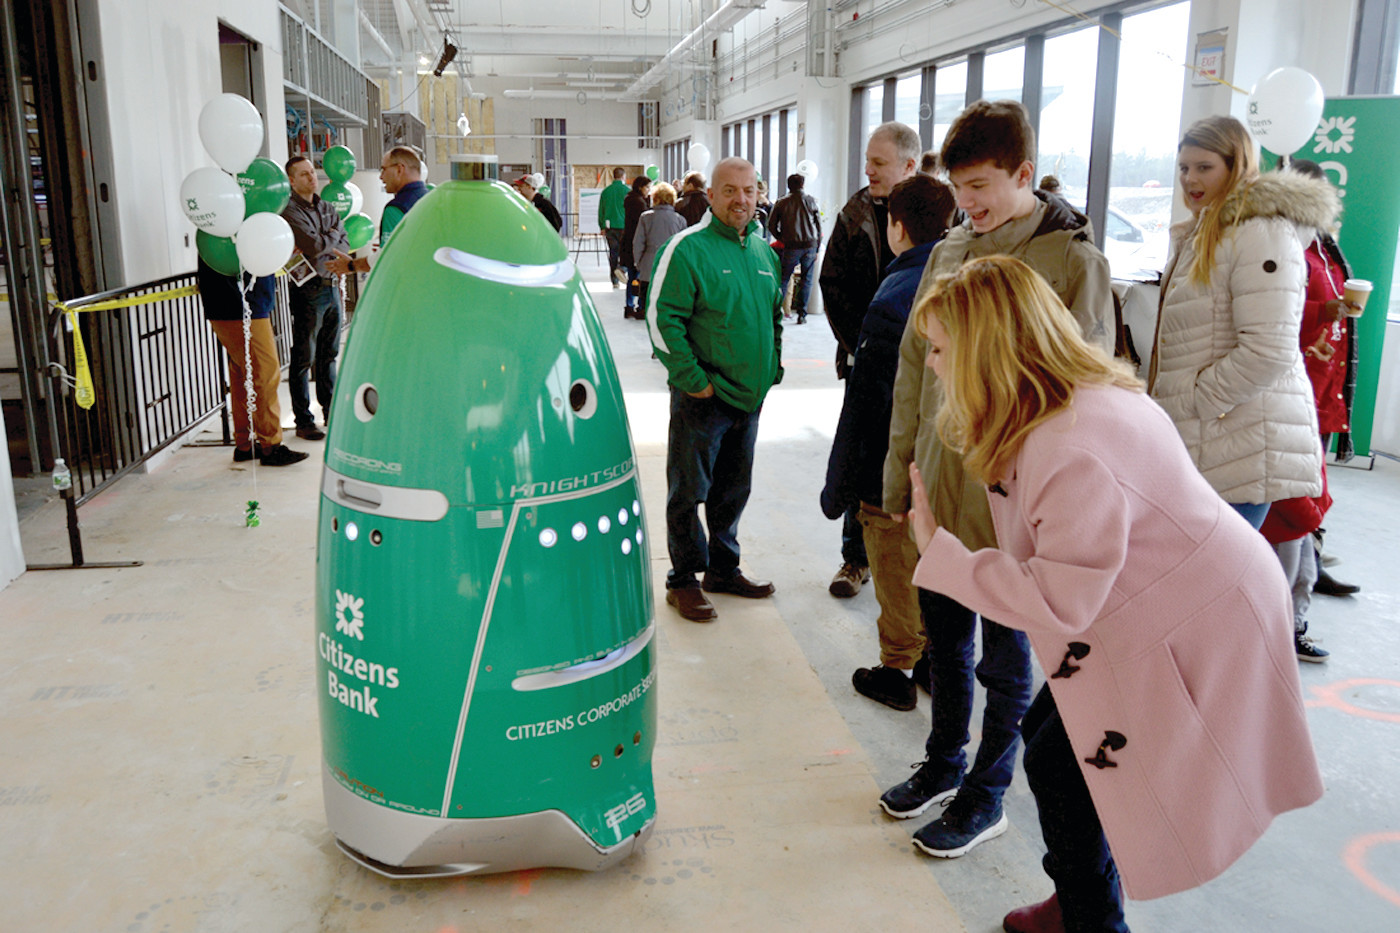 ROBOT SECURITY: This green security robot will be programmed to patrol the grounds and to interact with people as it makes its way around the Citizens Campus.